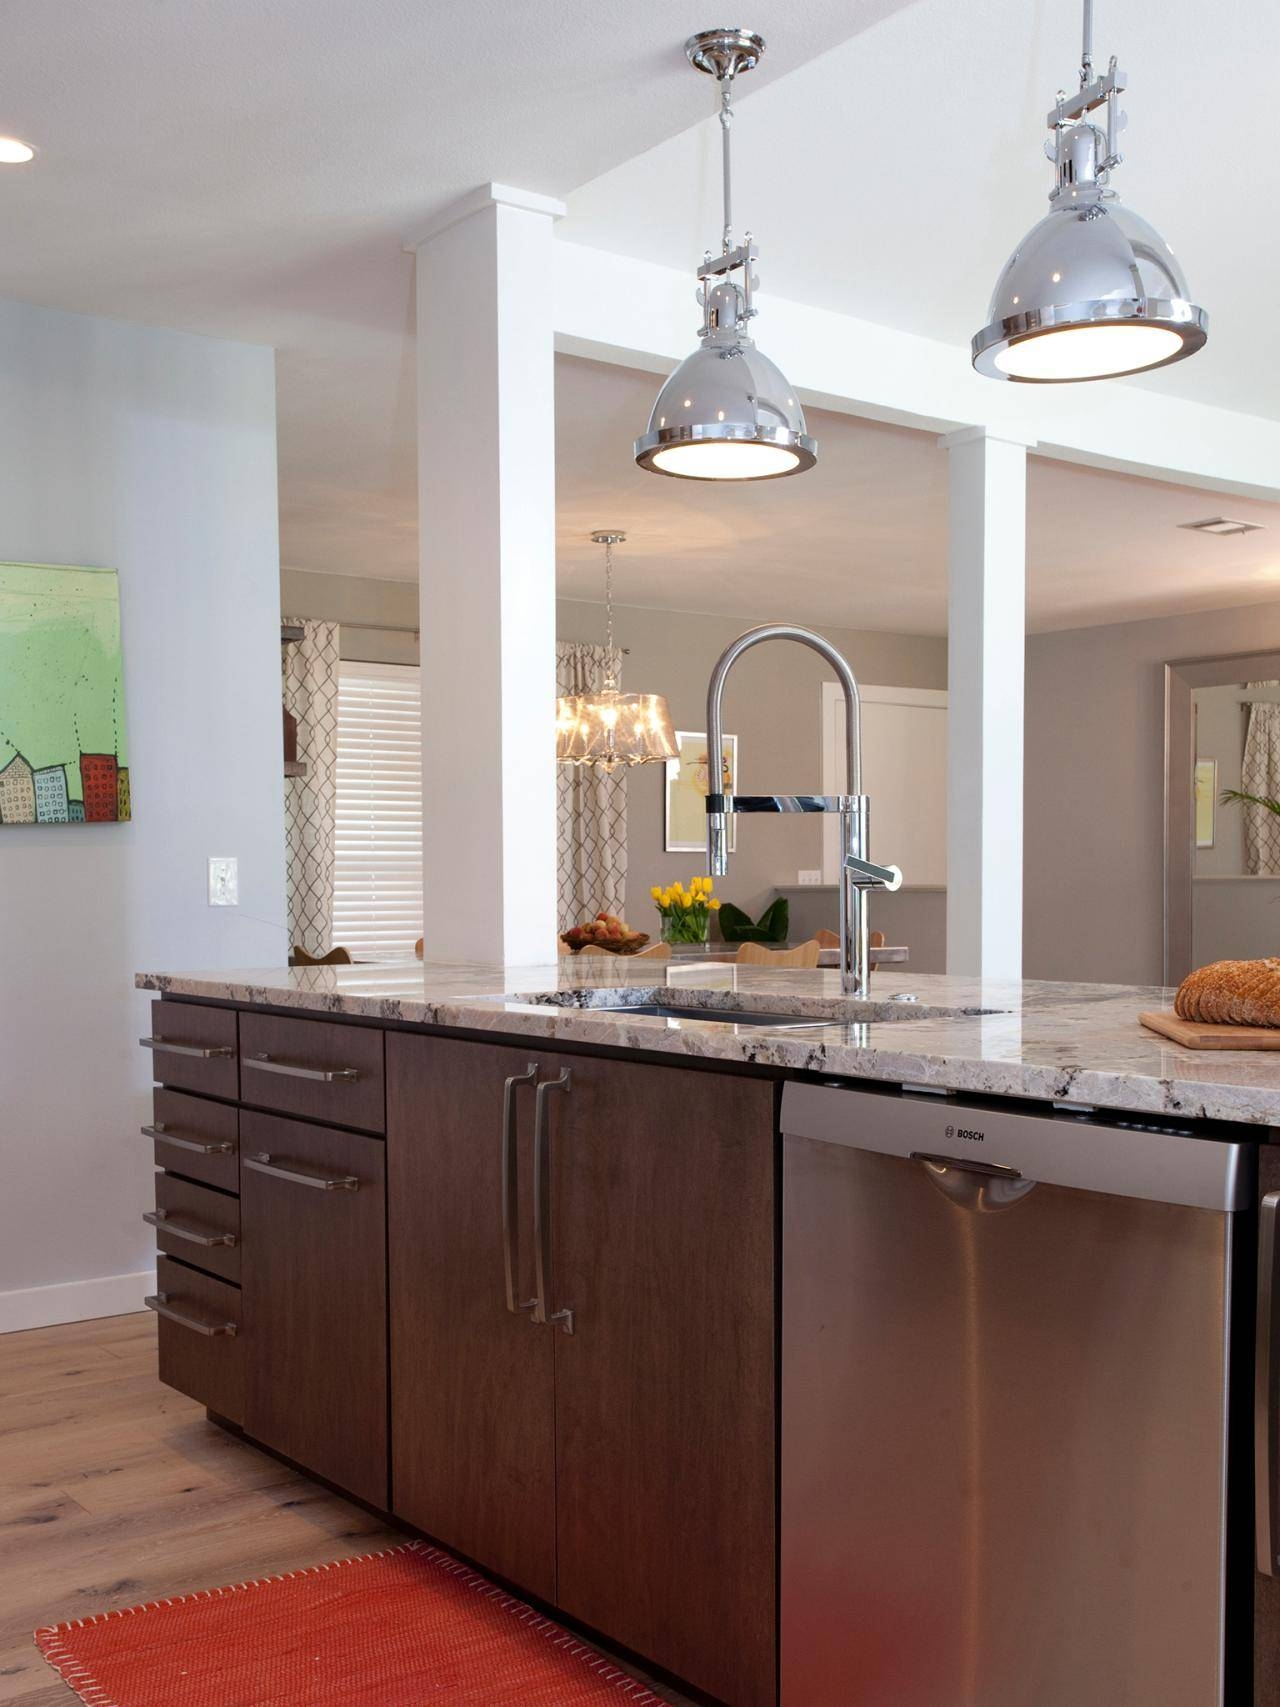 Stainless Steel Kitchen Light Fixtures – Aneilve pertaining to Stainless Pendant Lights (Image 11 of 15)